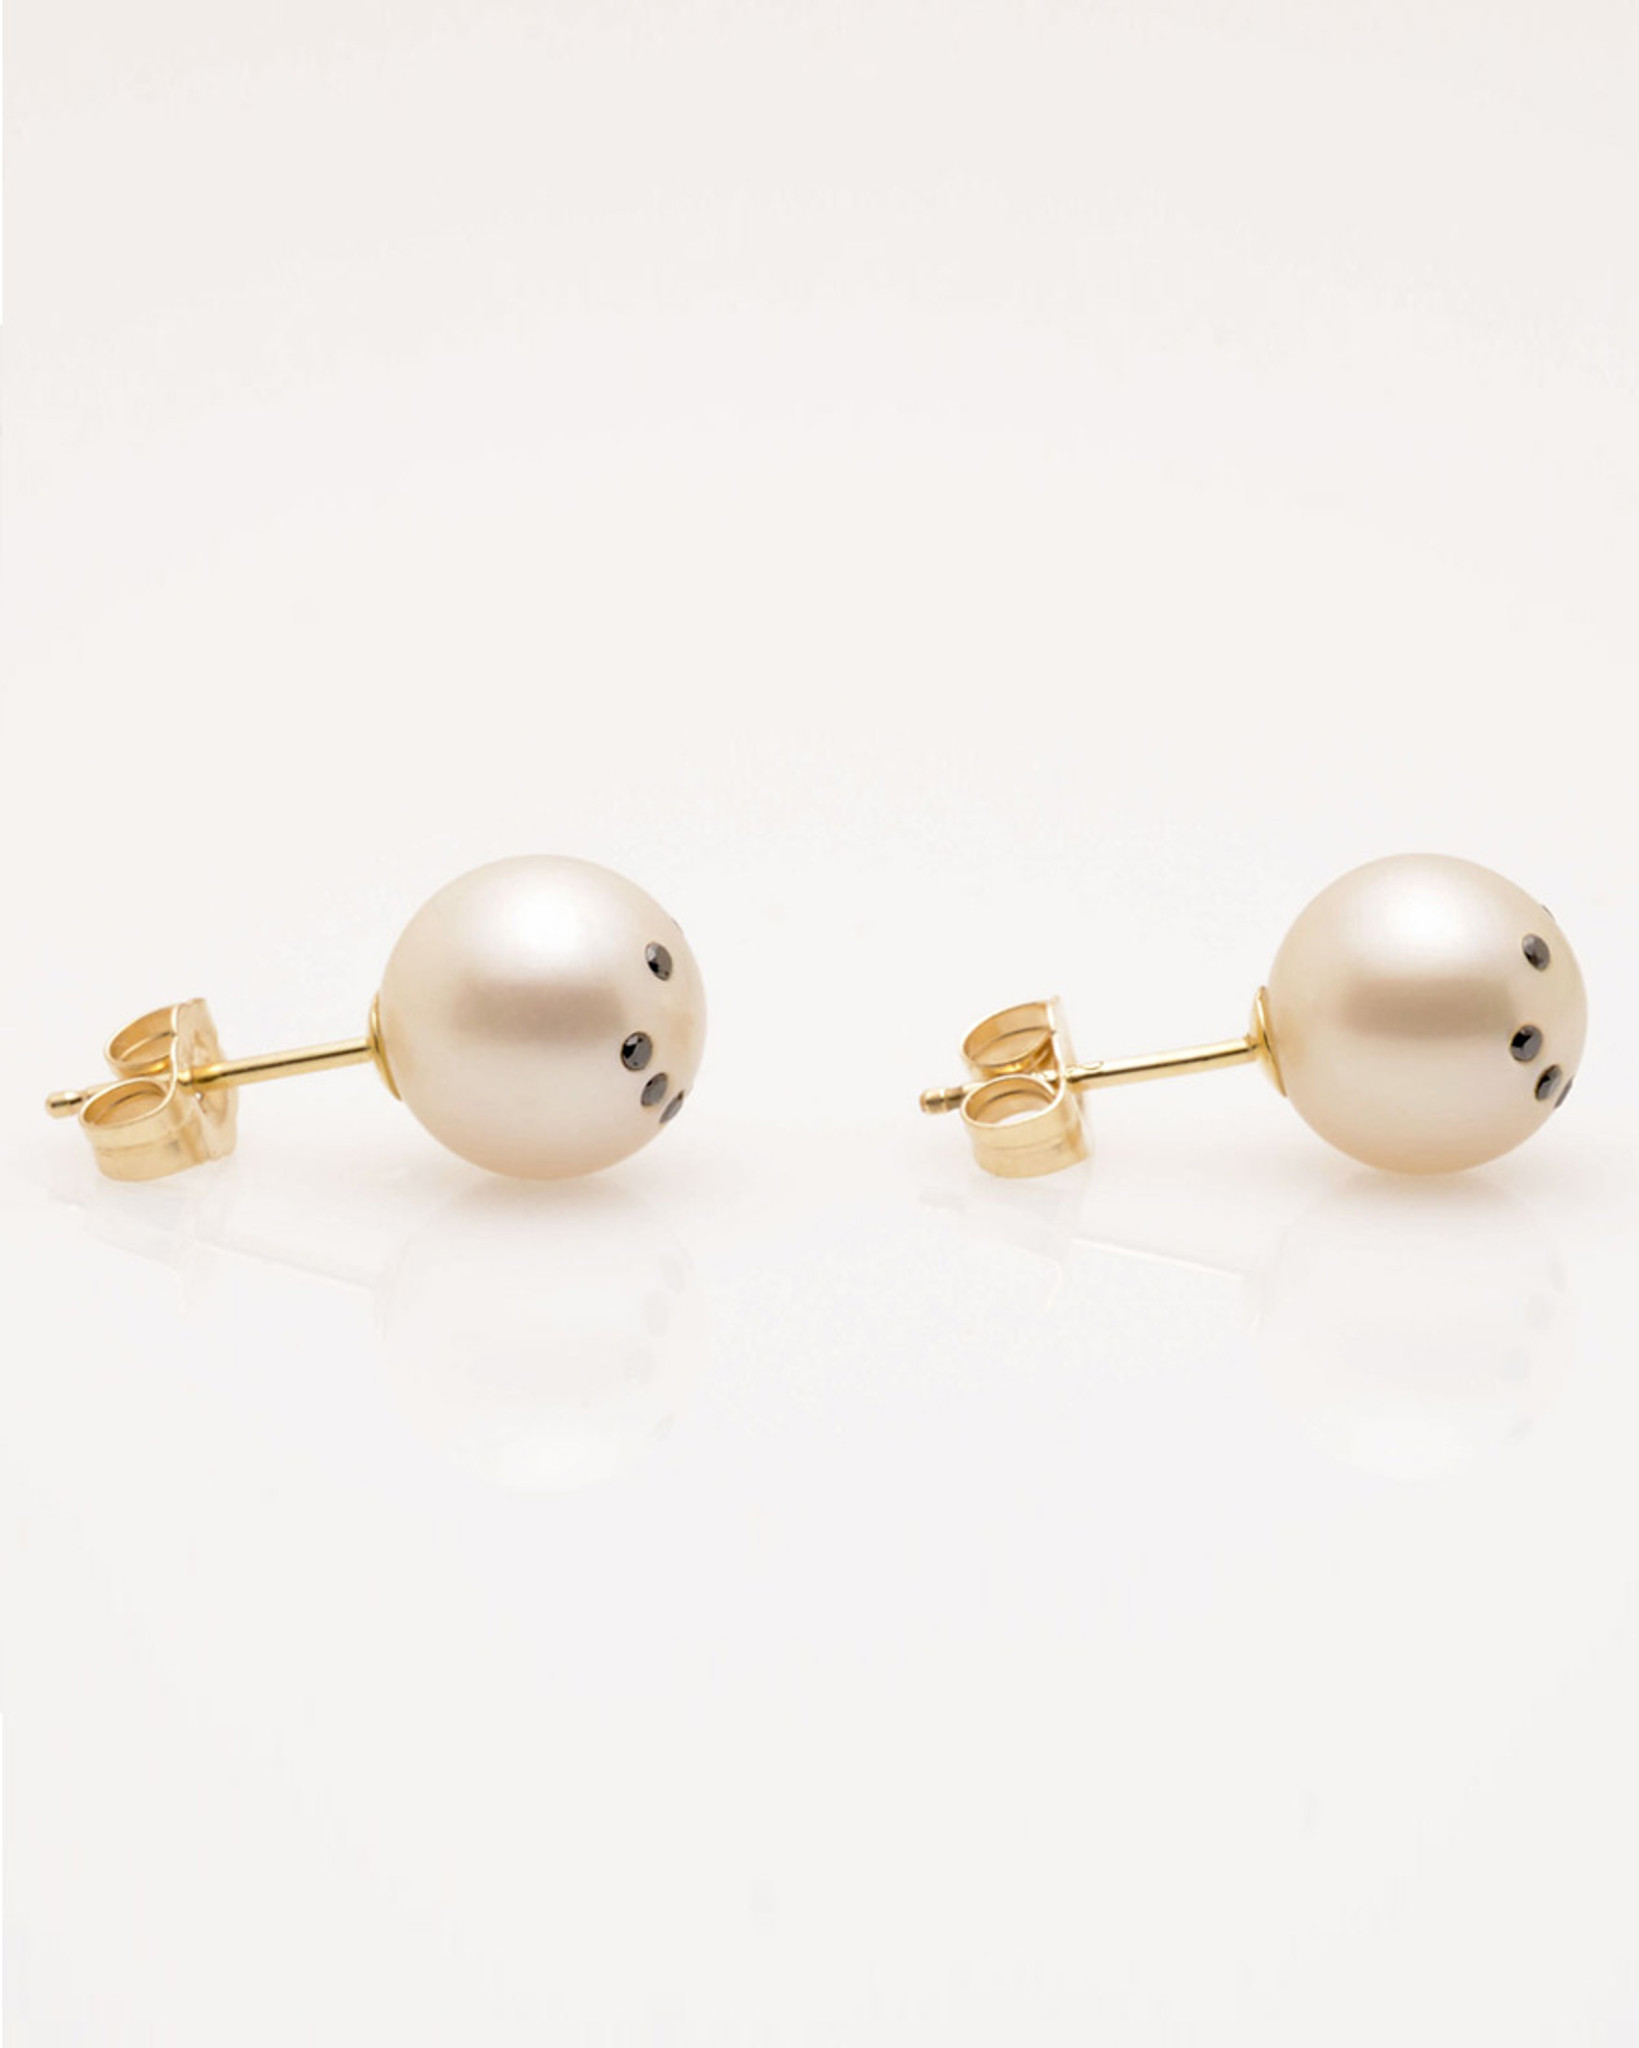 Side view of Cultured Freshwater Pearl Earrings with Smiley Emoji Diamond Pavè & 14k Gold Posts (8-9 mm) by Jewelry Designer Nektar De Stagni